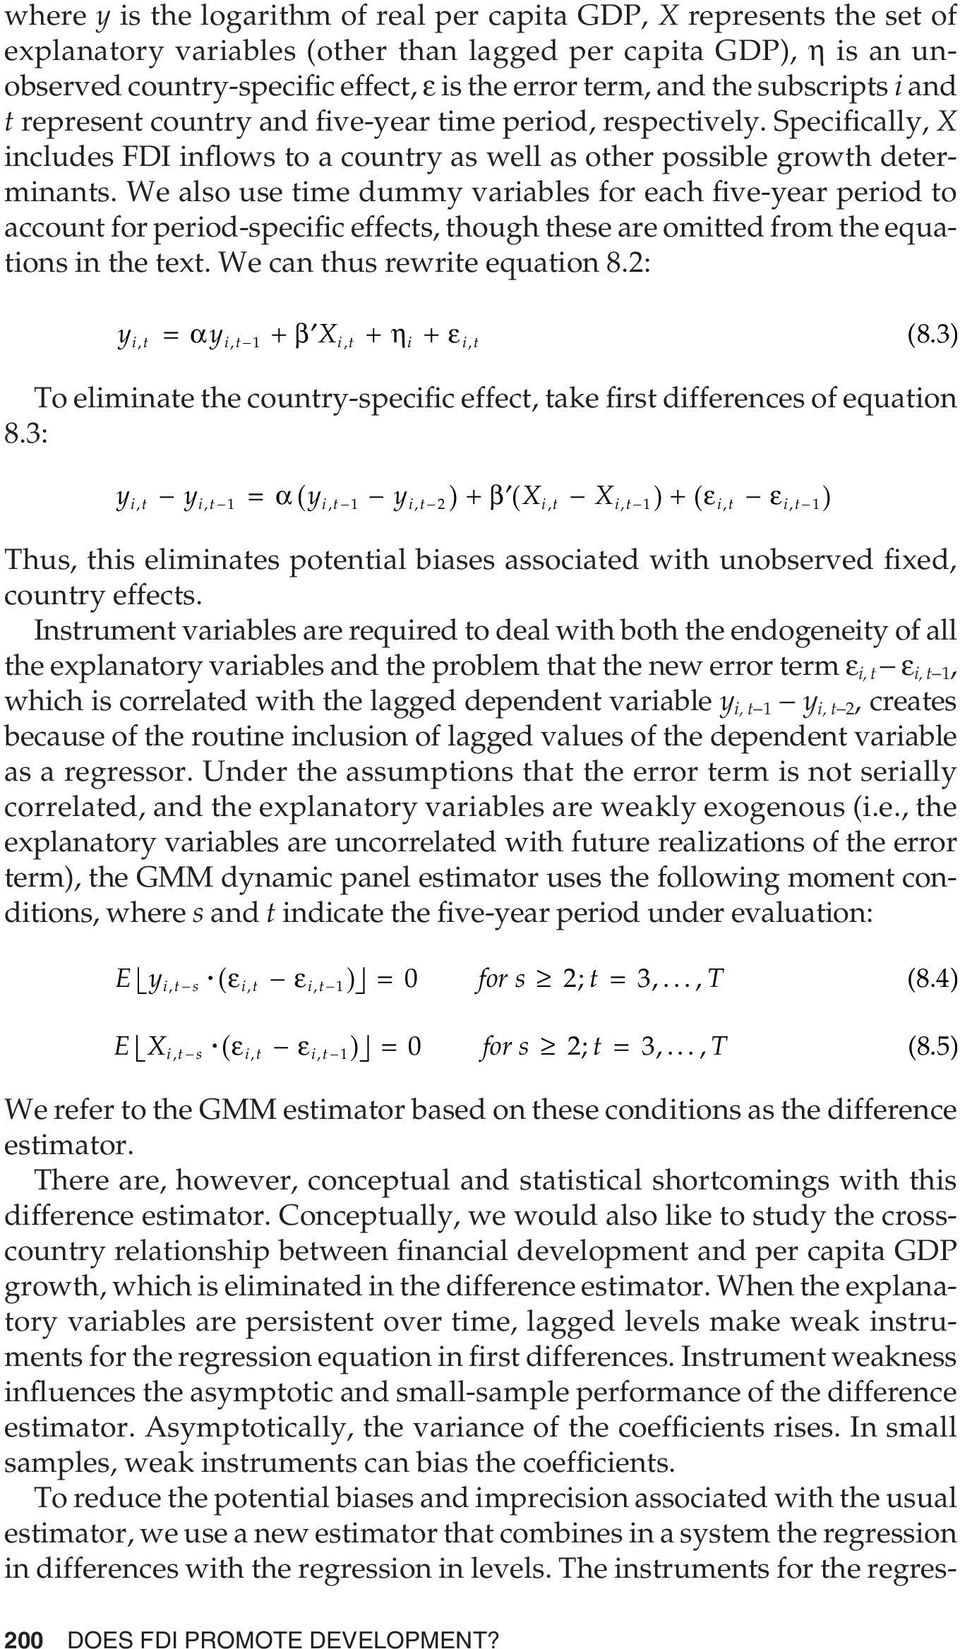 We also use time dummy variables for each five-year period to account for period-specific effects, though these are omitted from the equations in the text. We can thus rewrite equation 8.